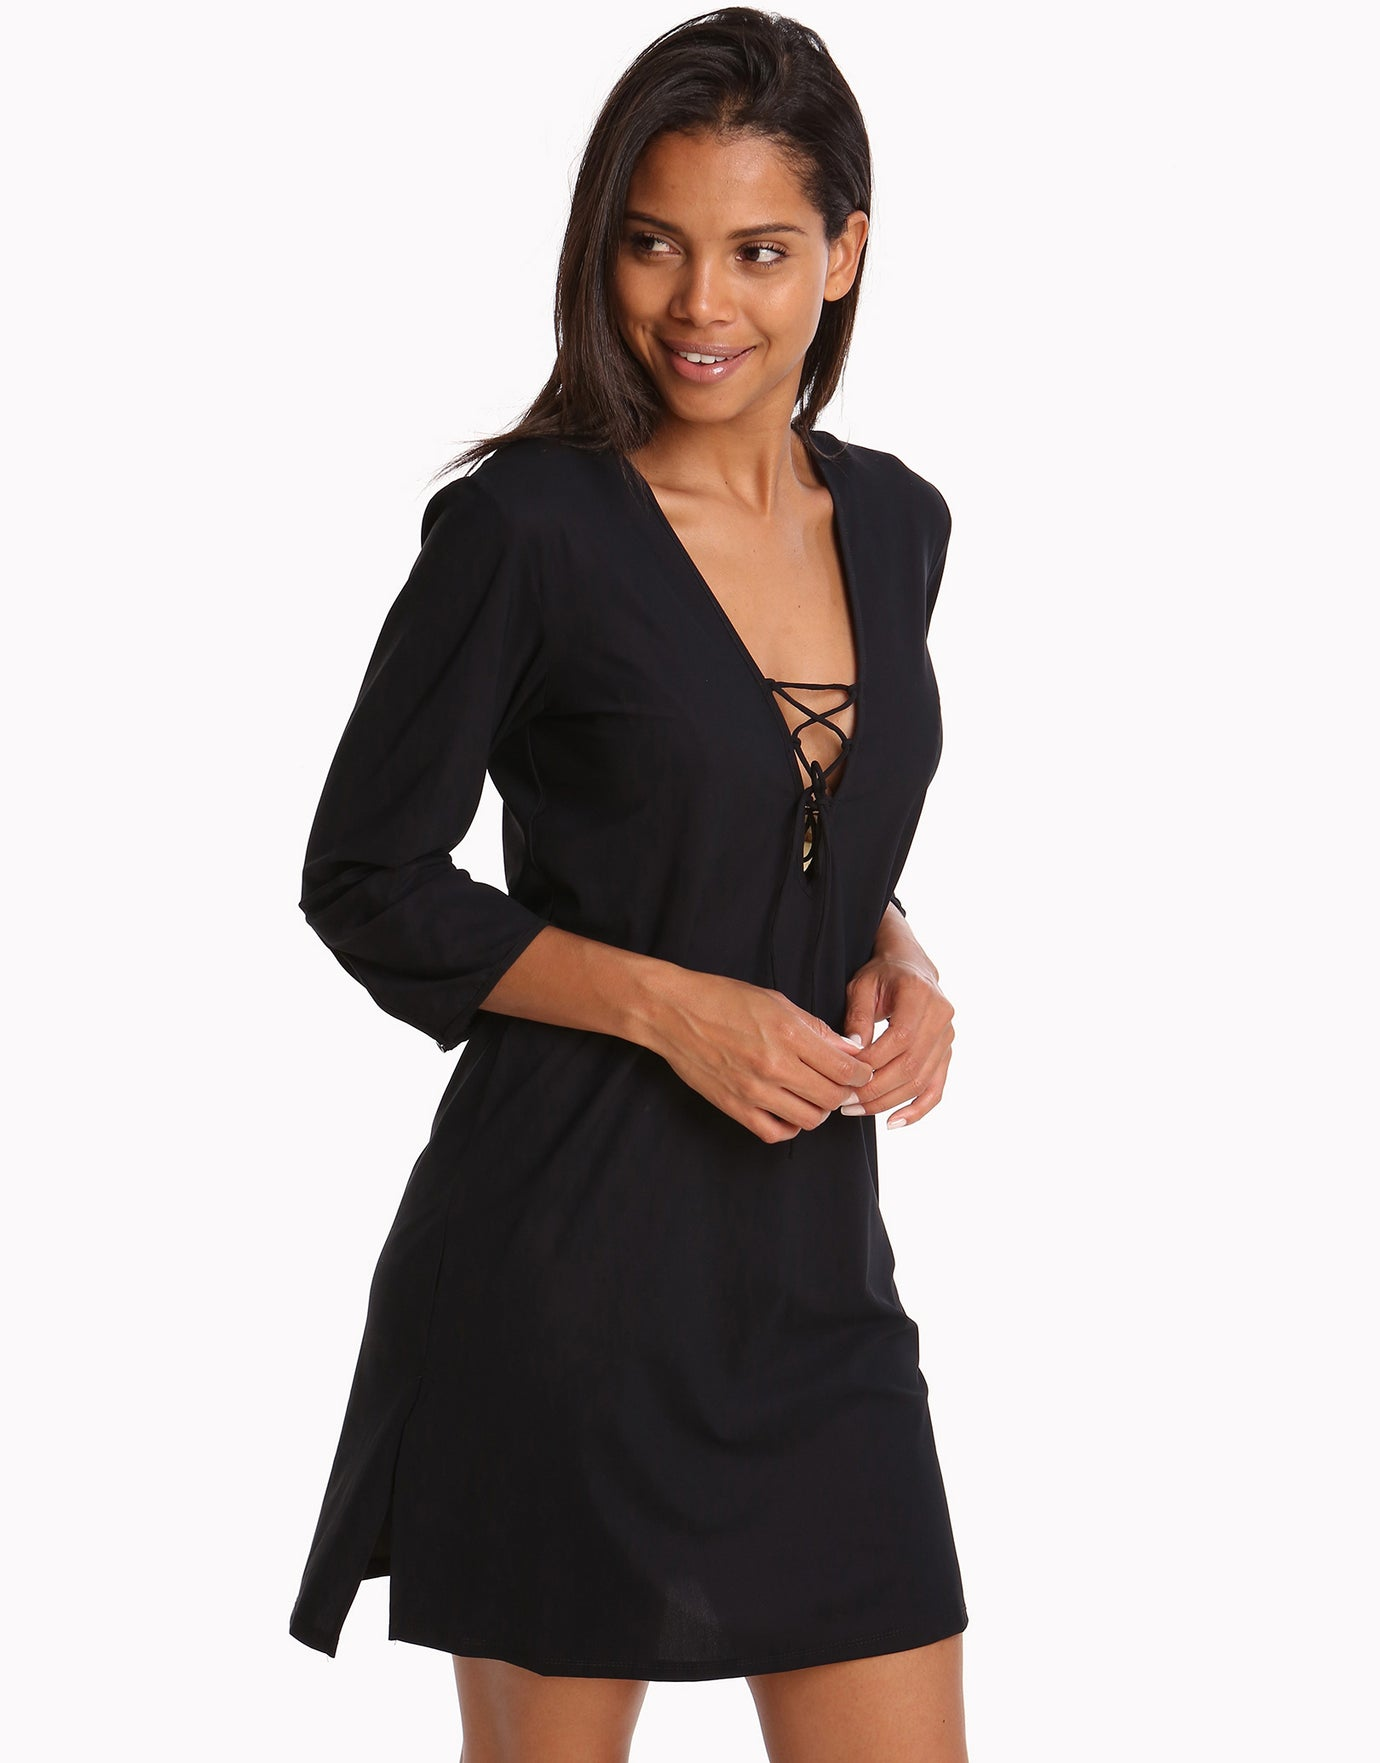 Gottex Vista Tunic Dress - Black